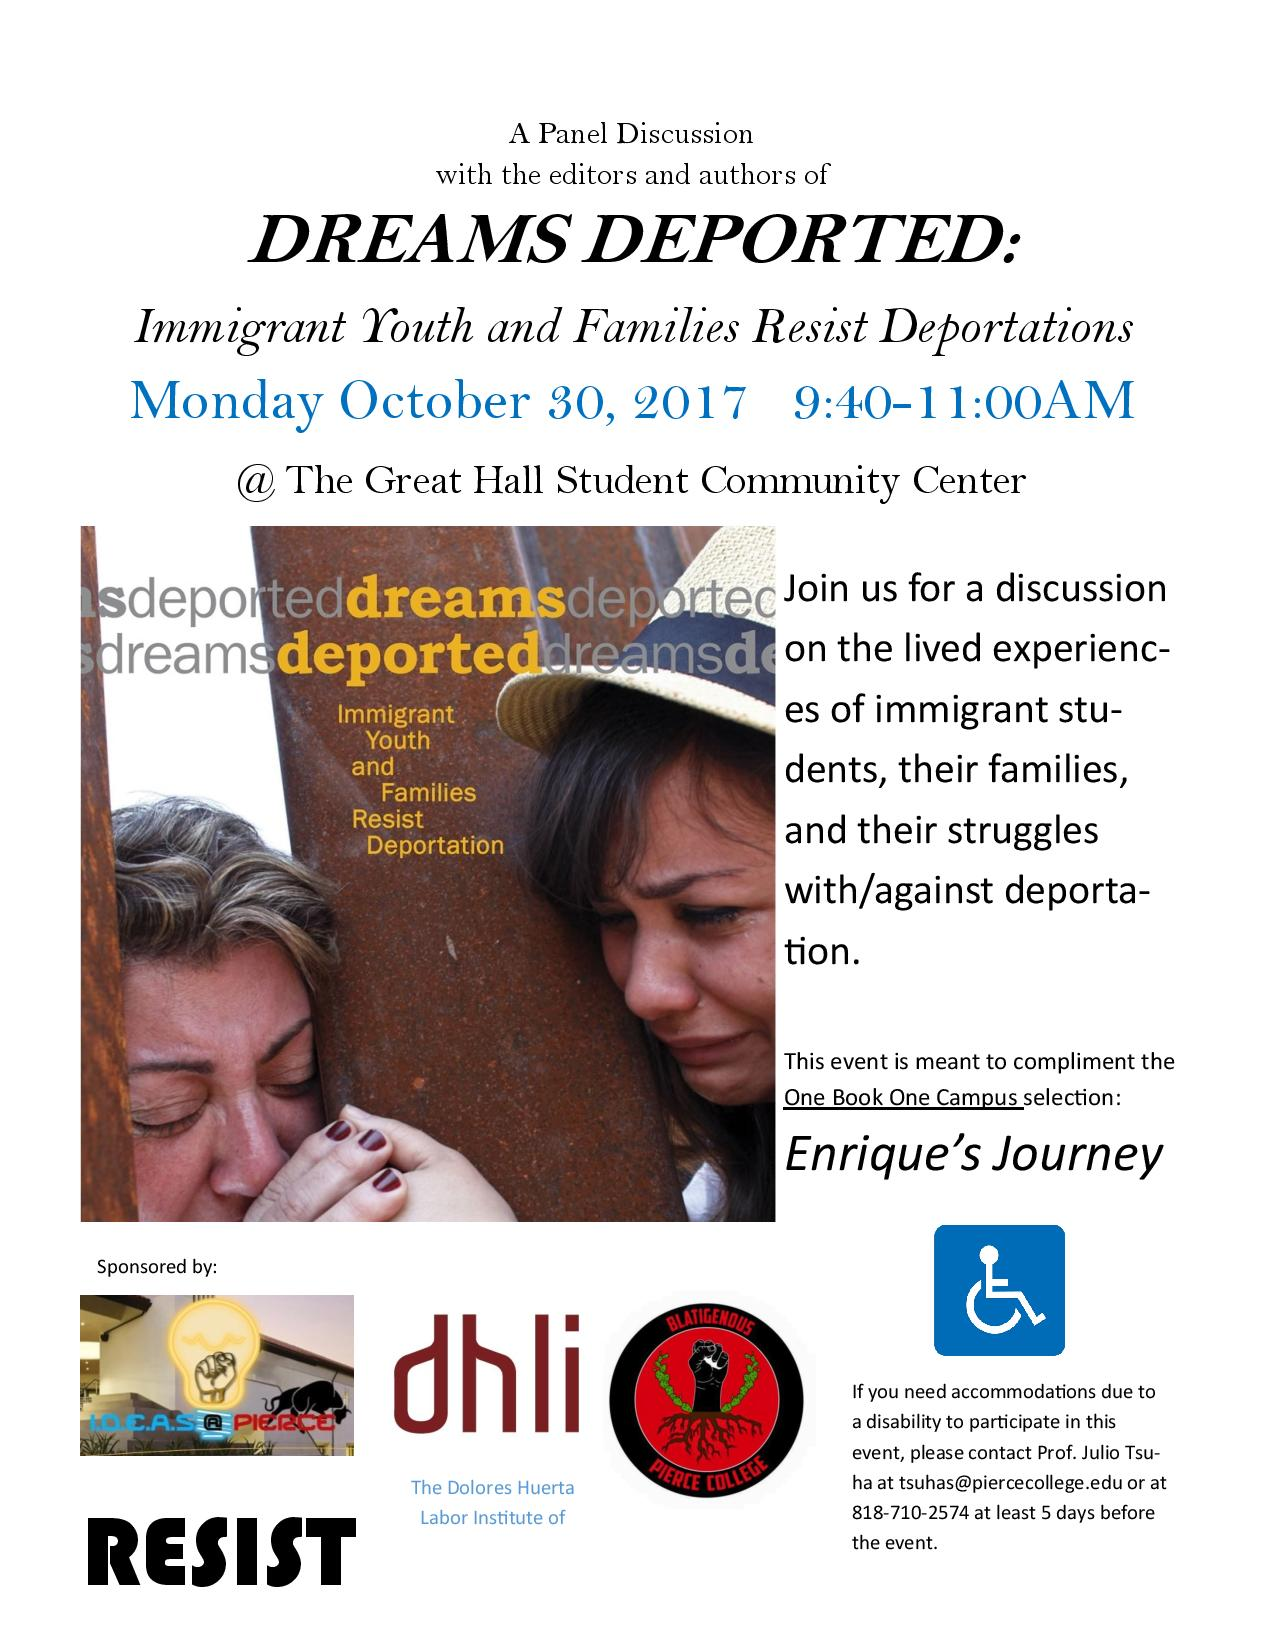 Dreams Deported Discussion Panel Flyer